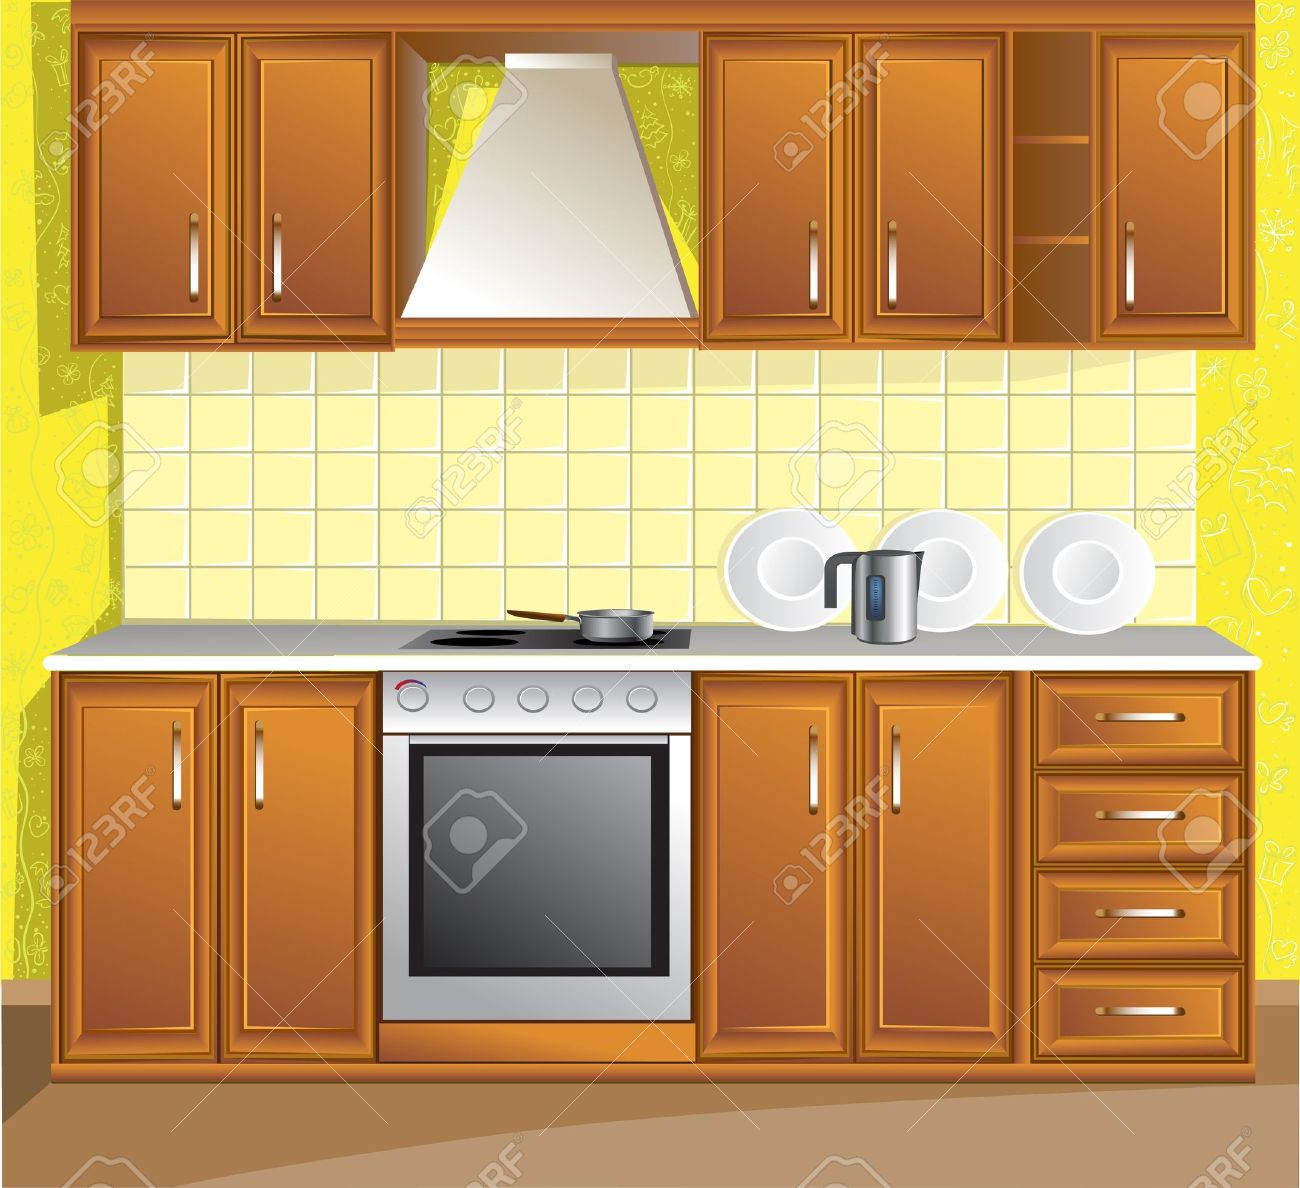 22,896 clean kitchen stock vector illustration and royalty free